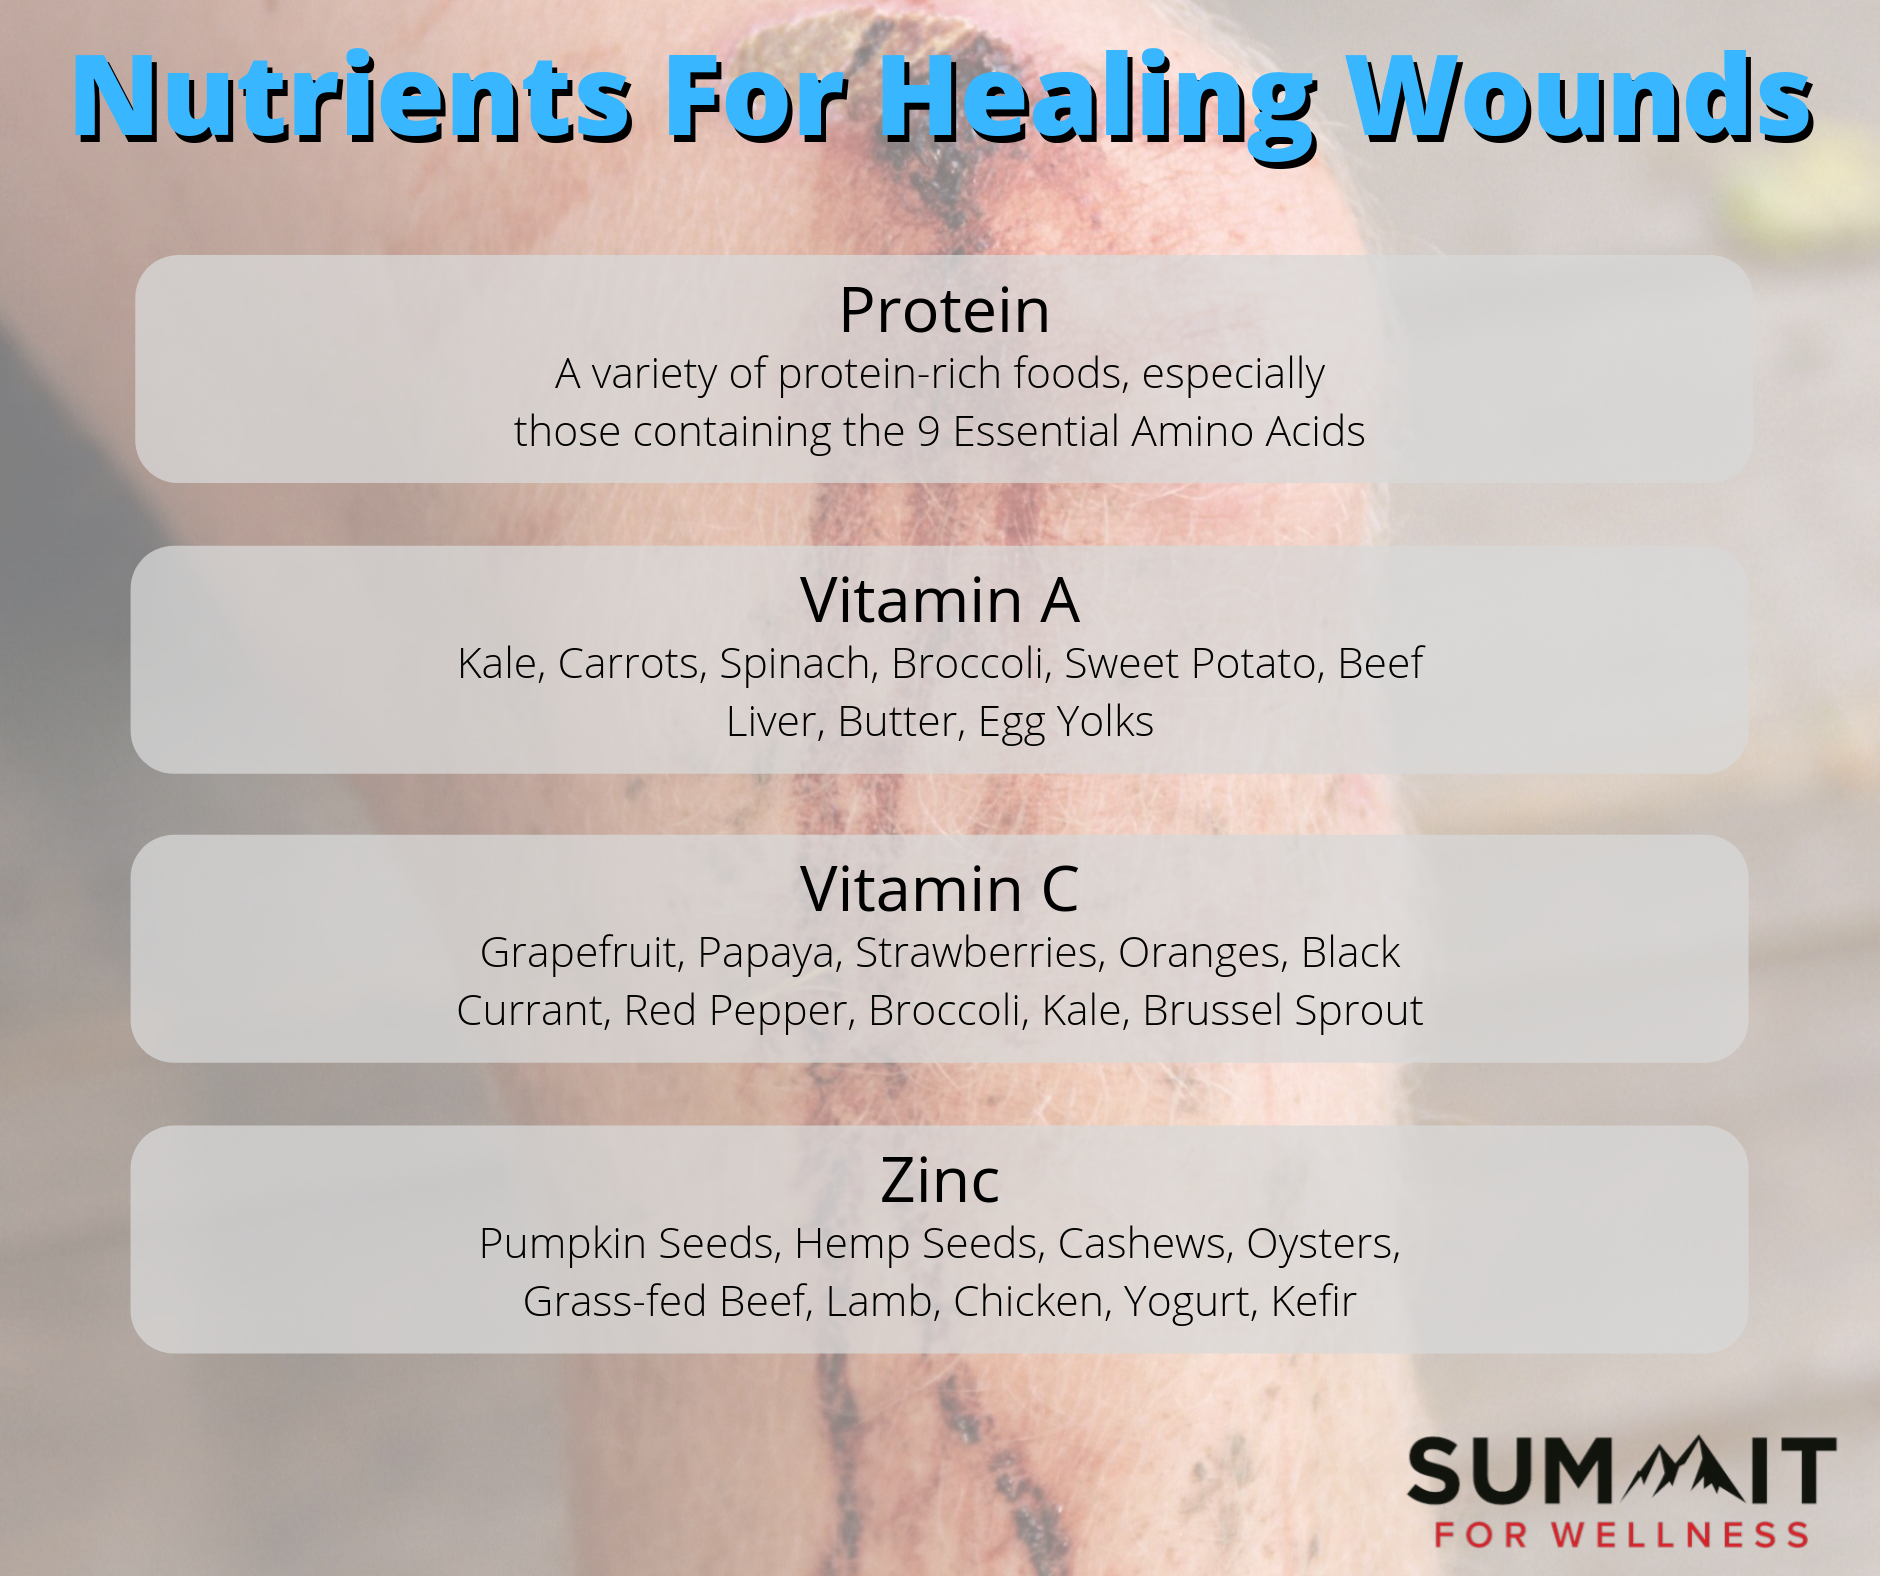 These nutrients are important for healing wounds, and will help wounds to heal faster